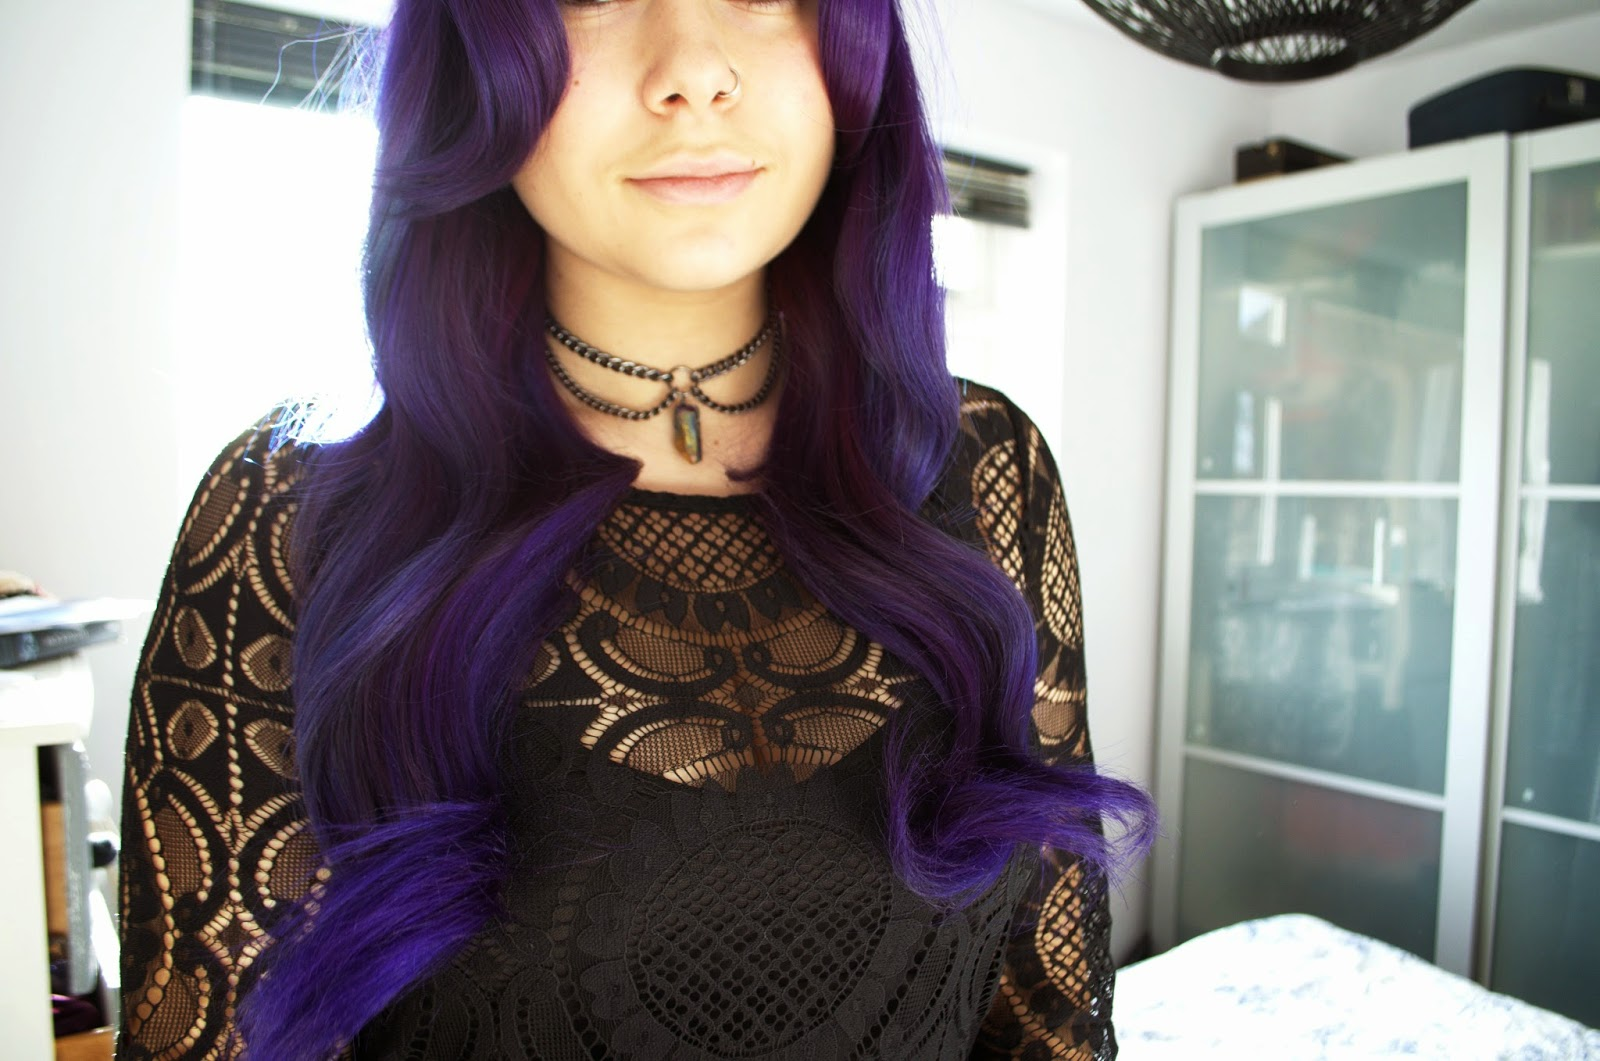 Vintage waves tutorial with purple hair.